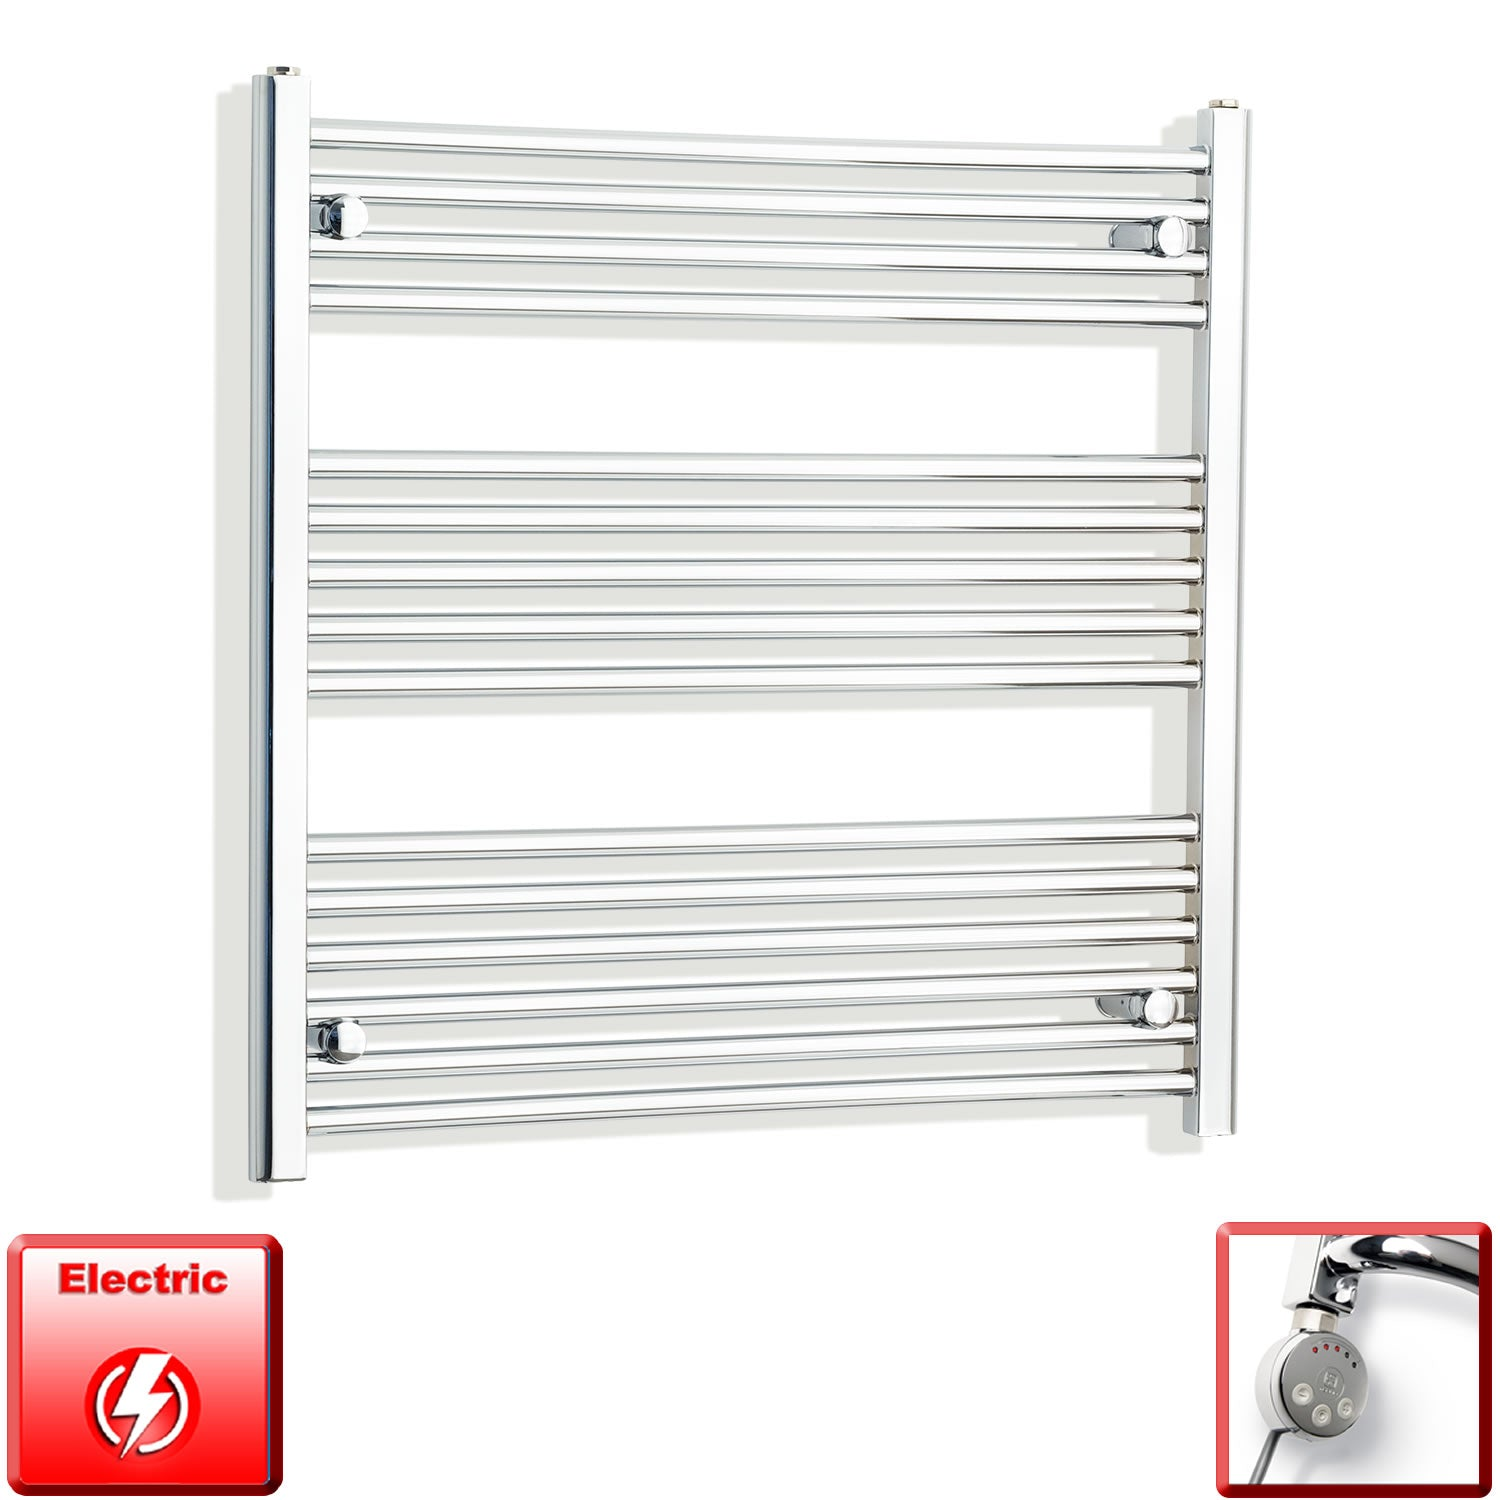 700mm Wide 800mm High Pre-Filled Chrome Electric Towel Rail Radiator With Thermostatic MEG Element